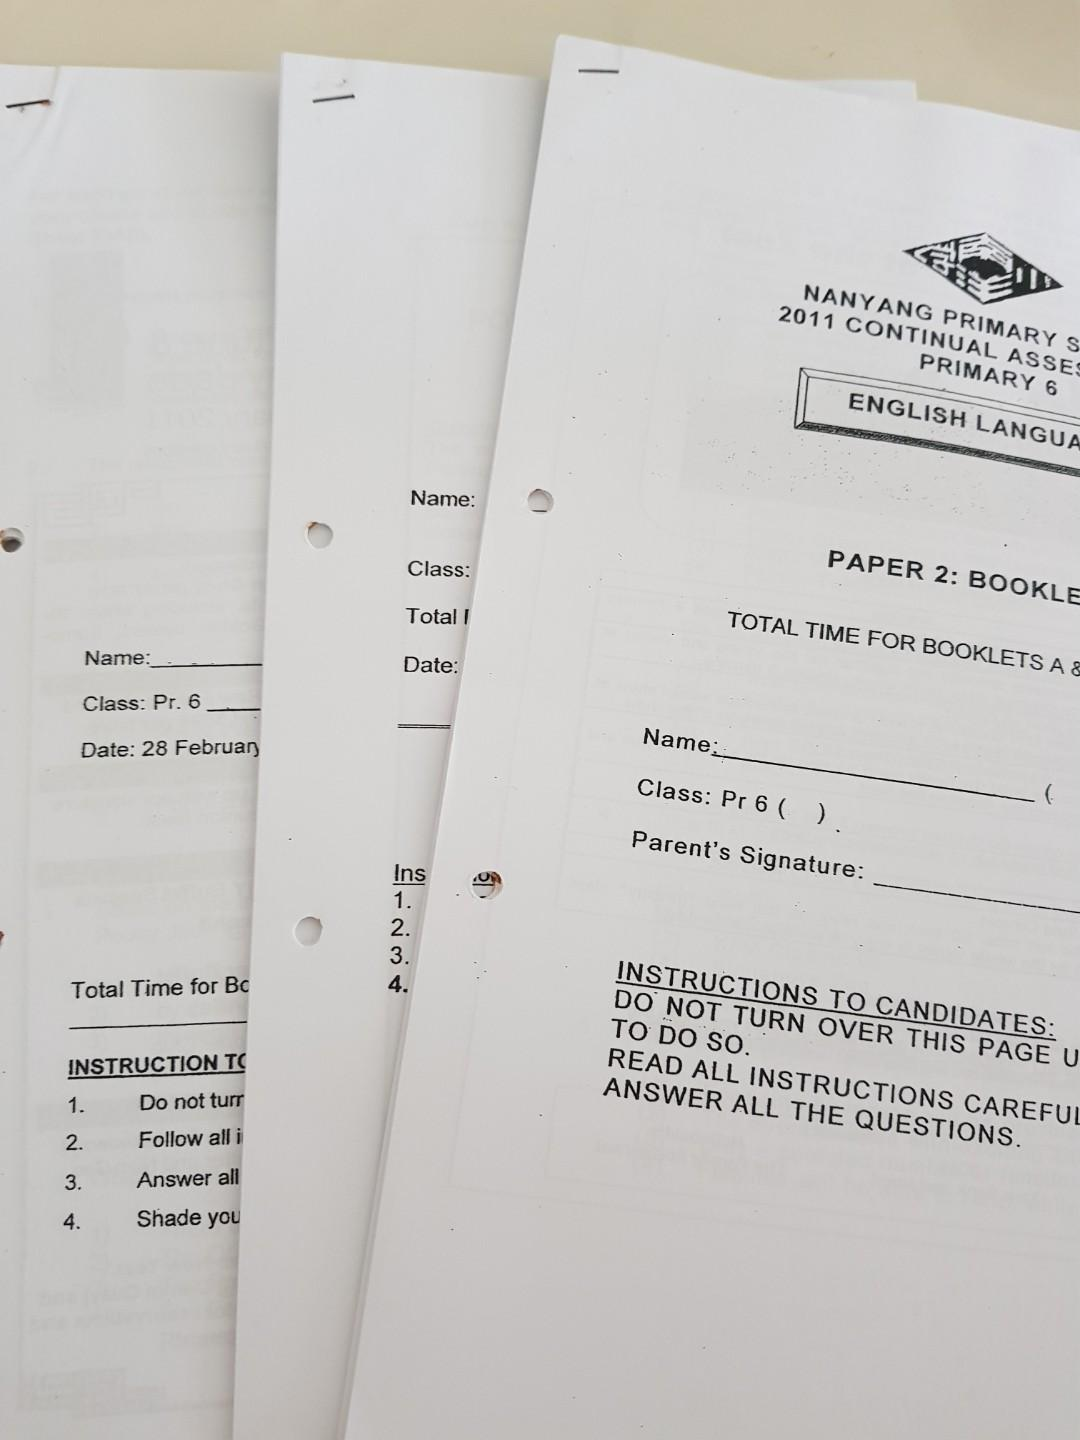 FWP - New) P6 English Exam Papers, Books & Stationery